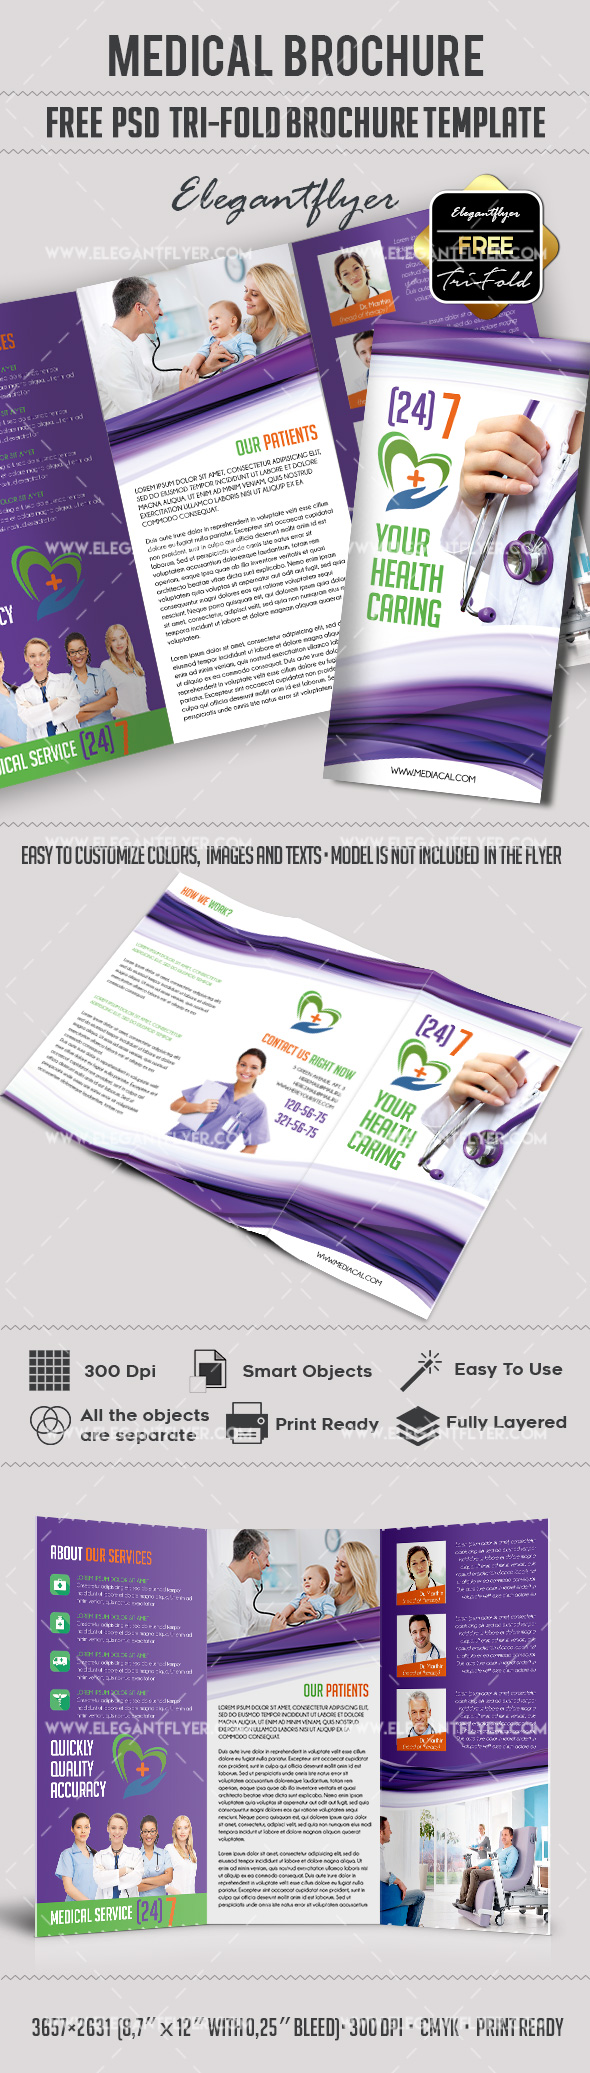 Medical free tri fold psd brochure template by for Tri fold brochure template psd